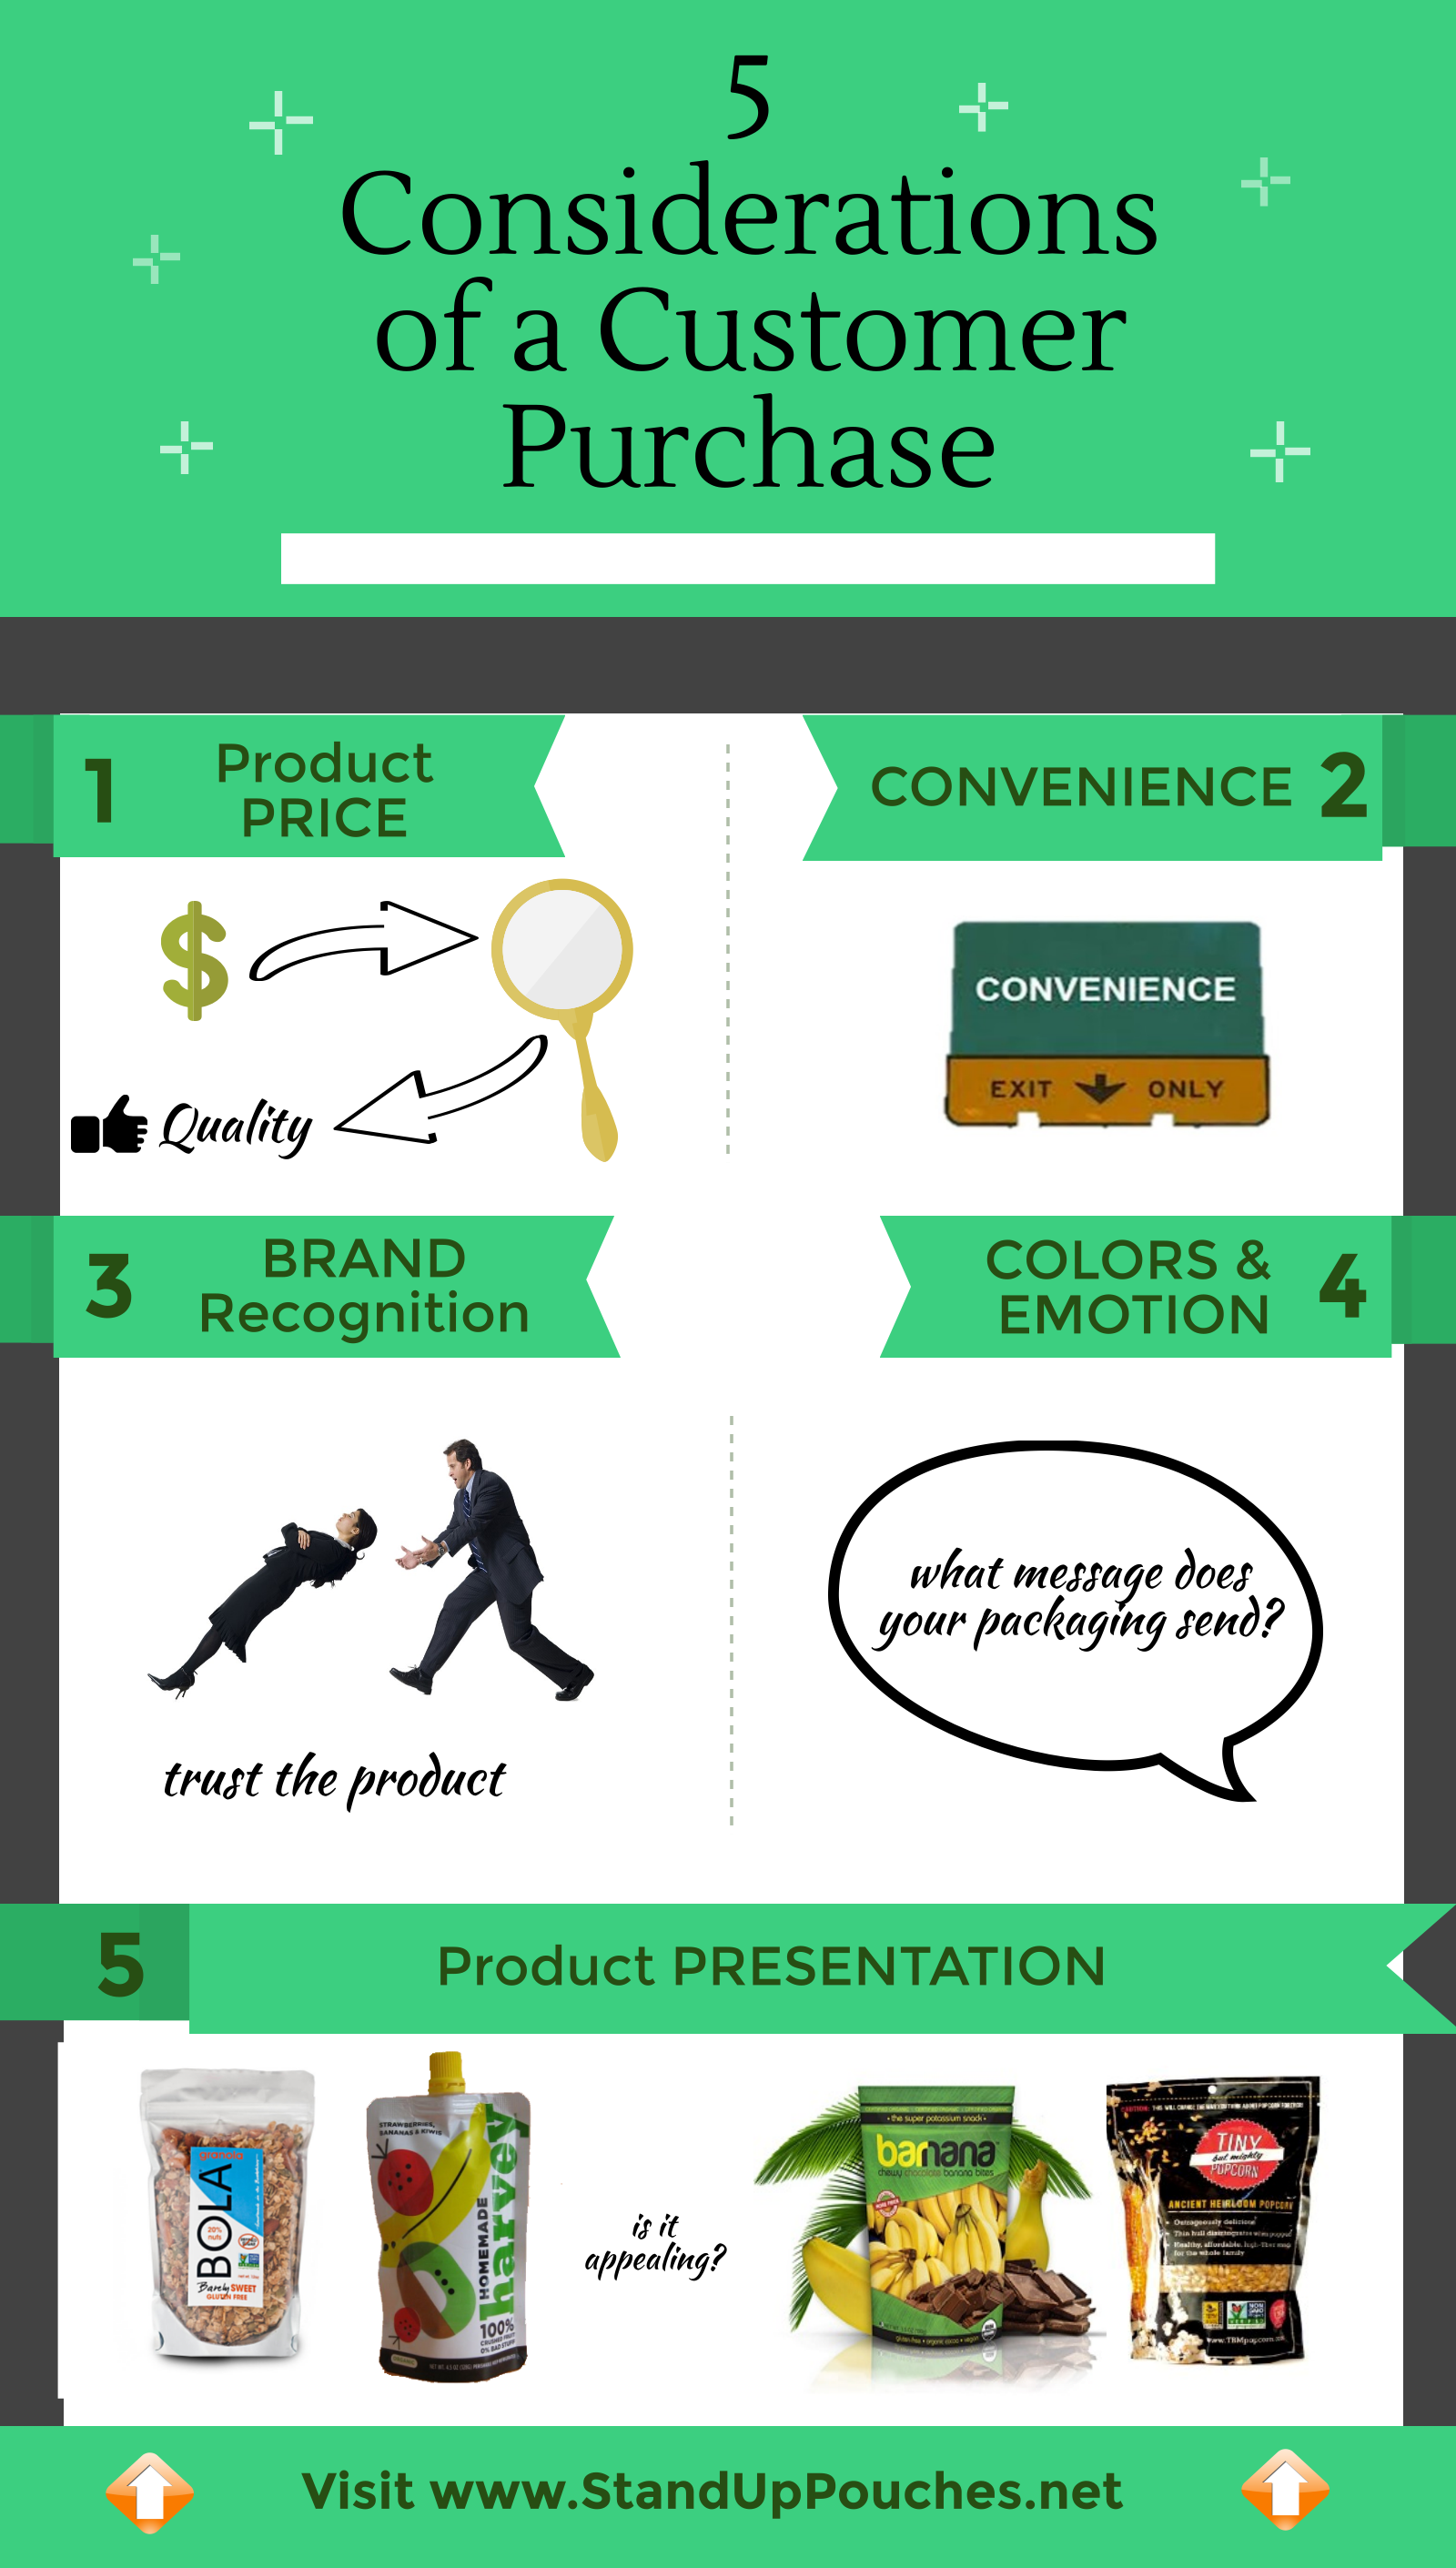 5_Considerations_of_a_Customer_Purchase